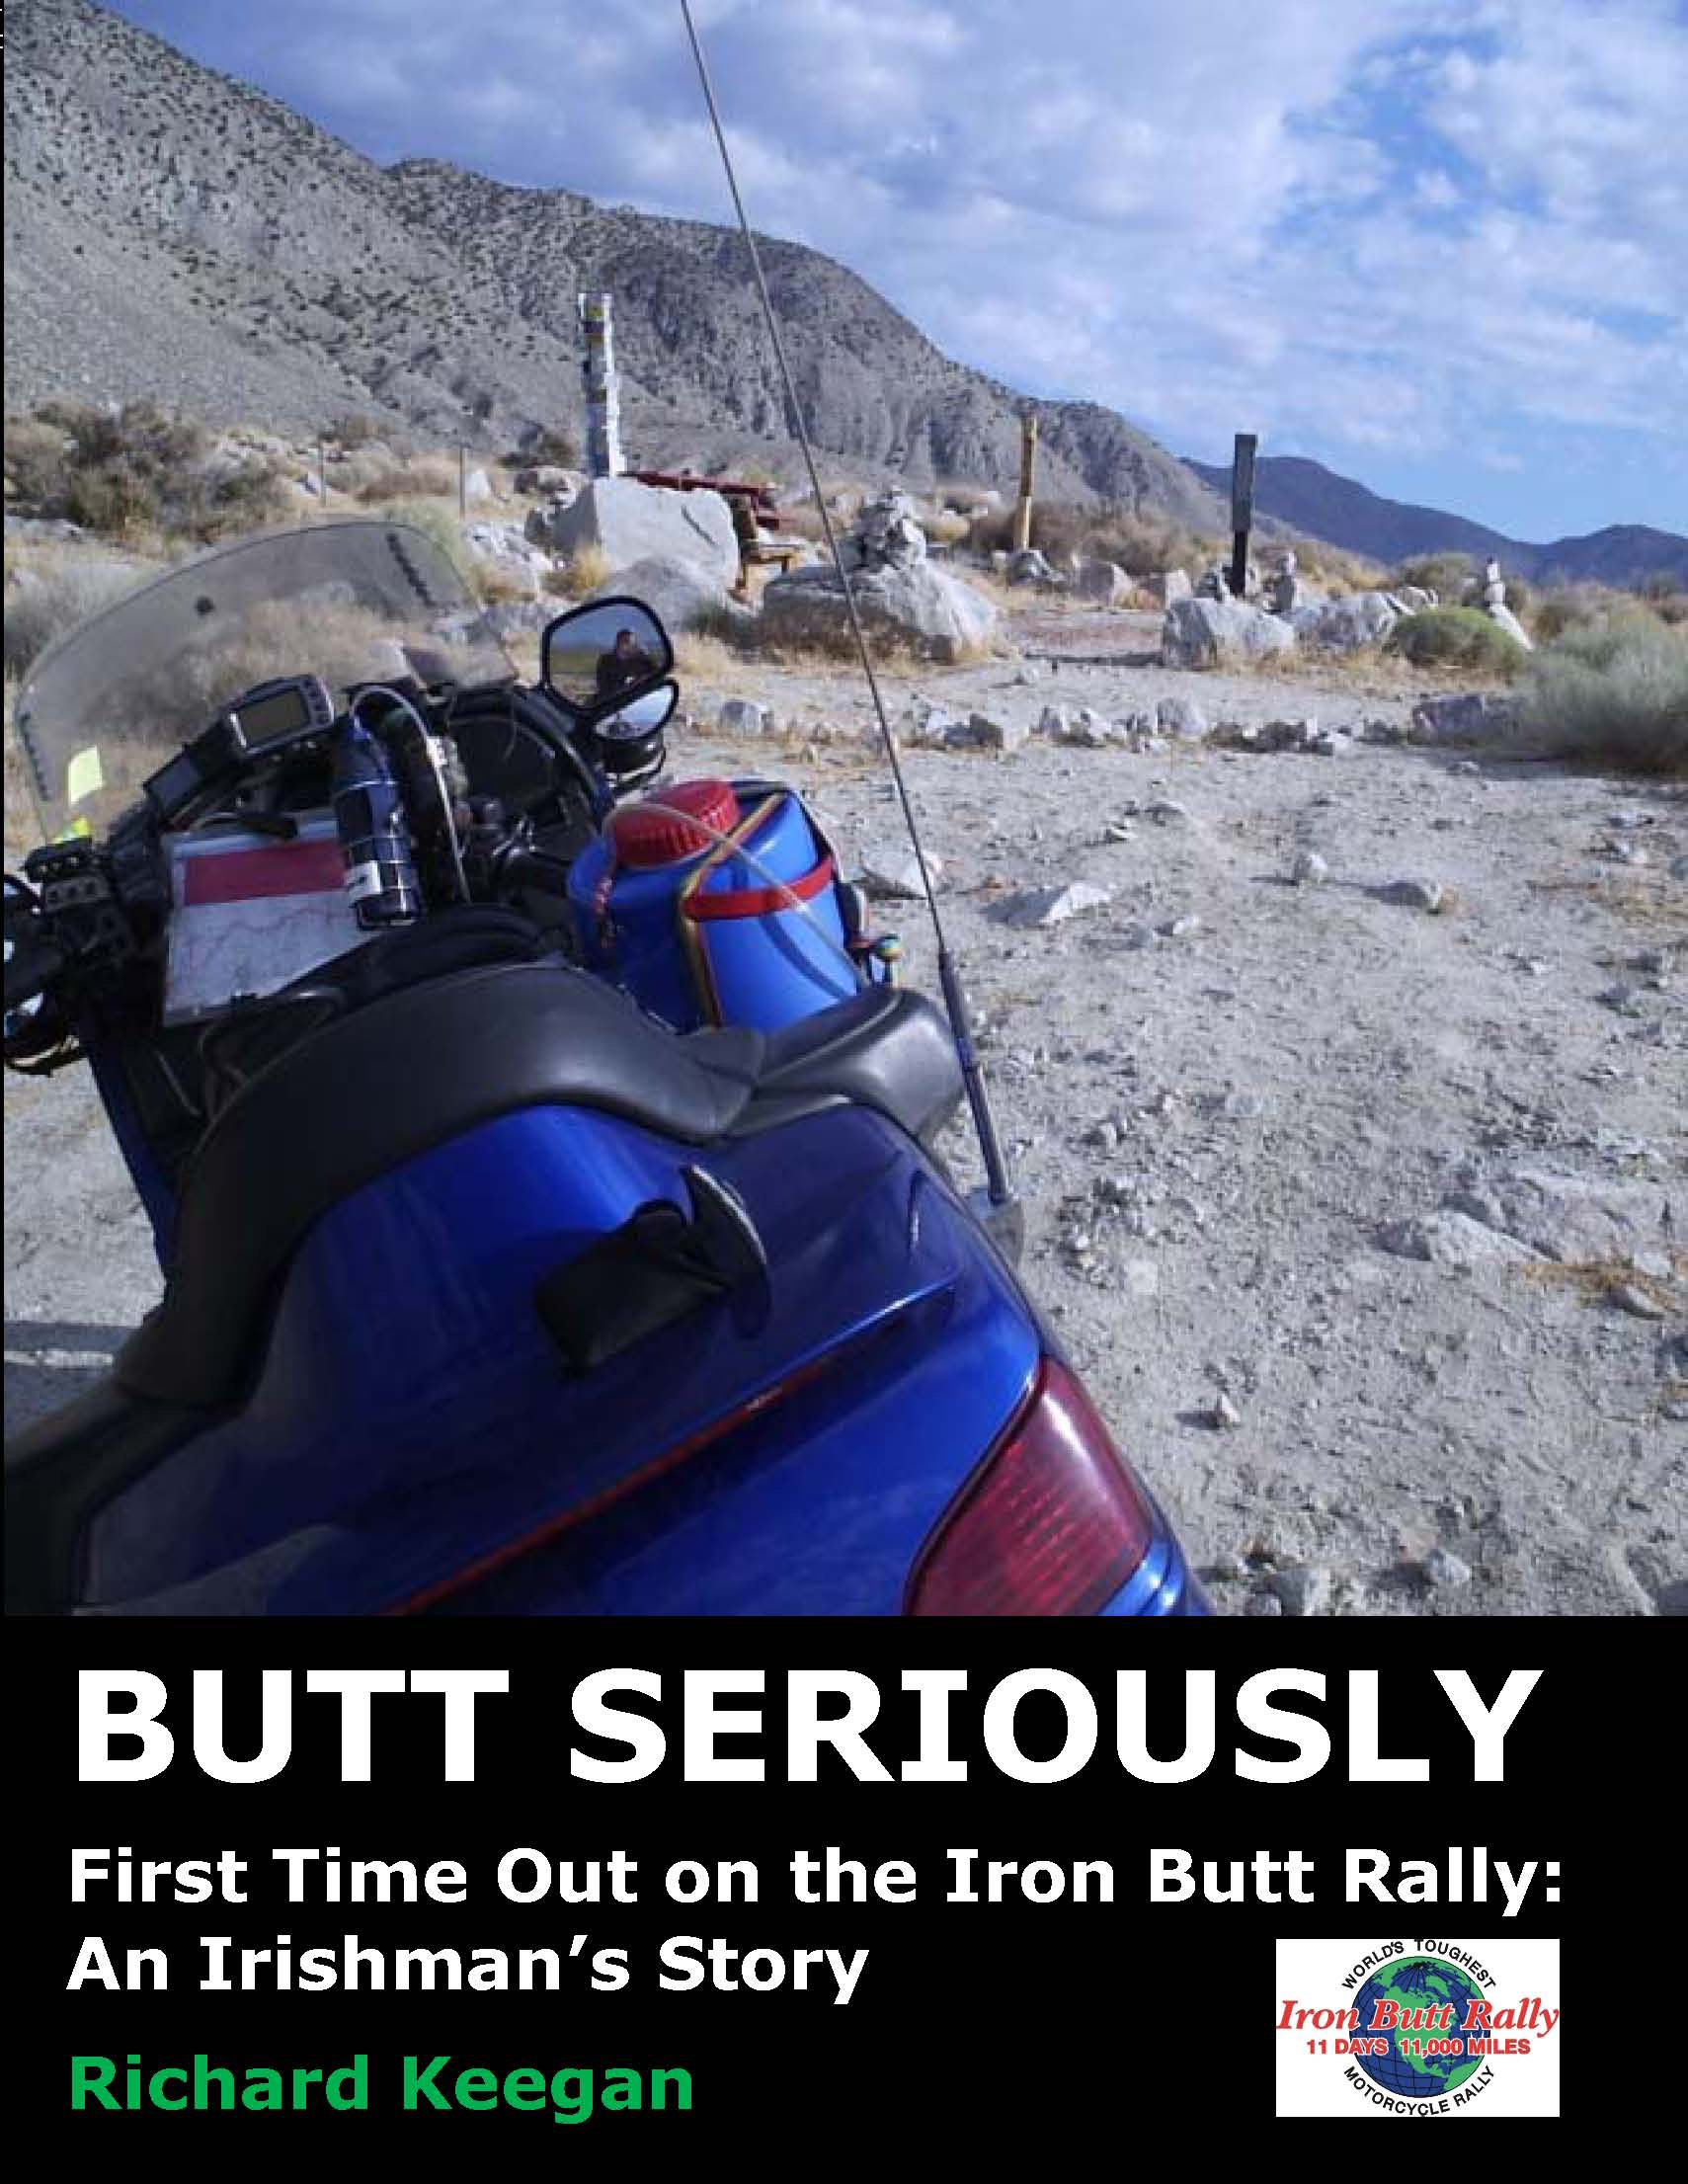 Butt Seriously: First Time Out on the Iron Butt Rally: An Irishman's Story